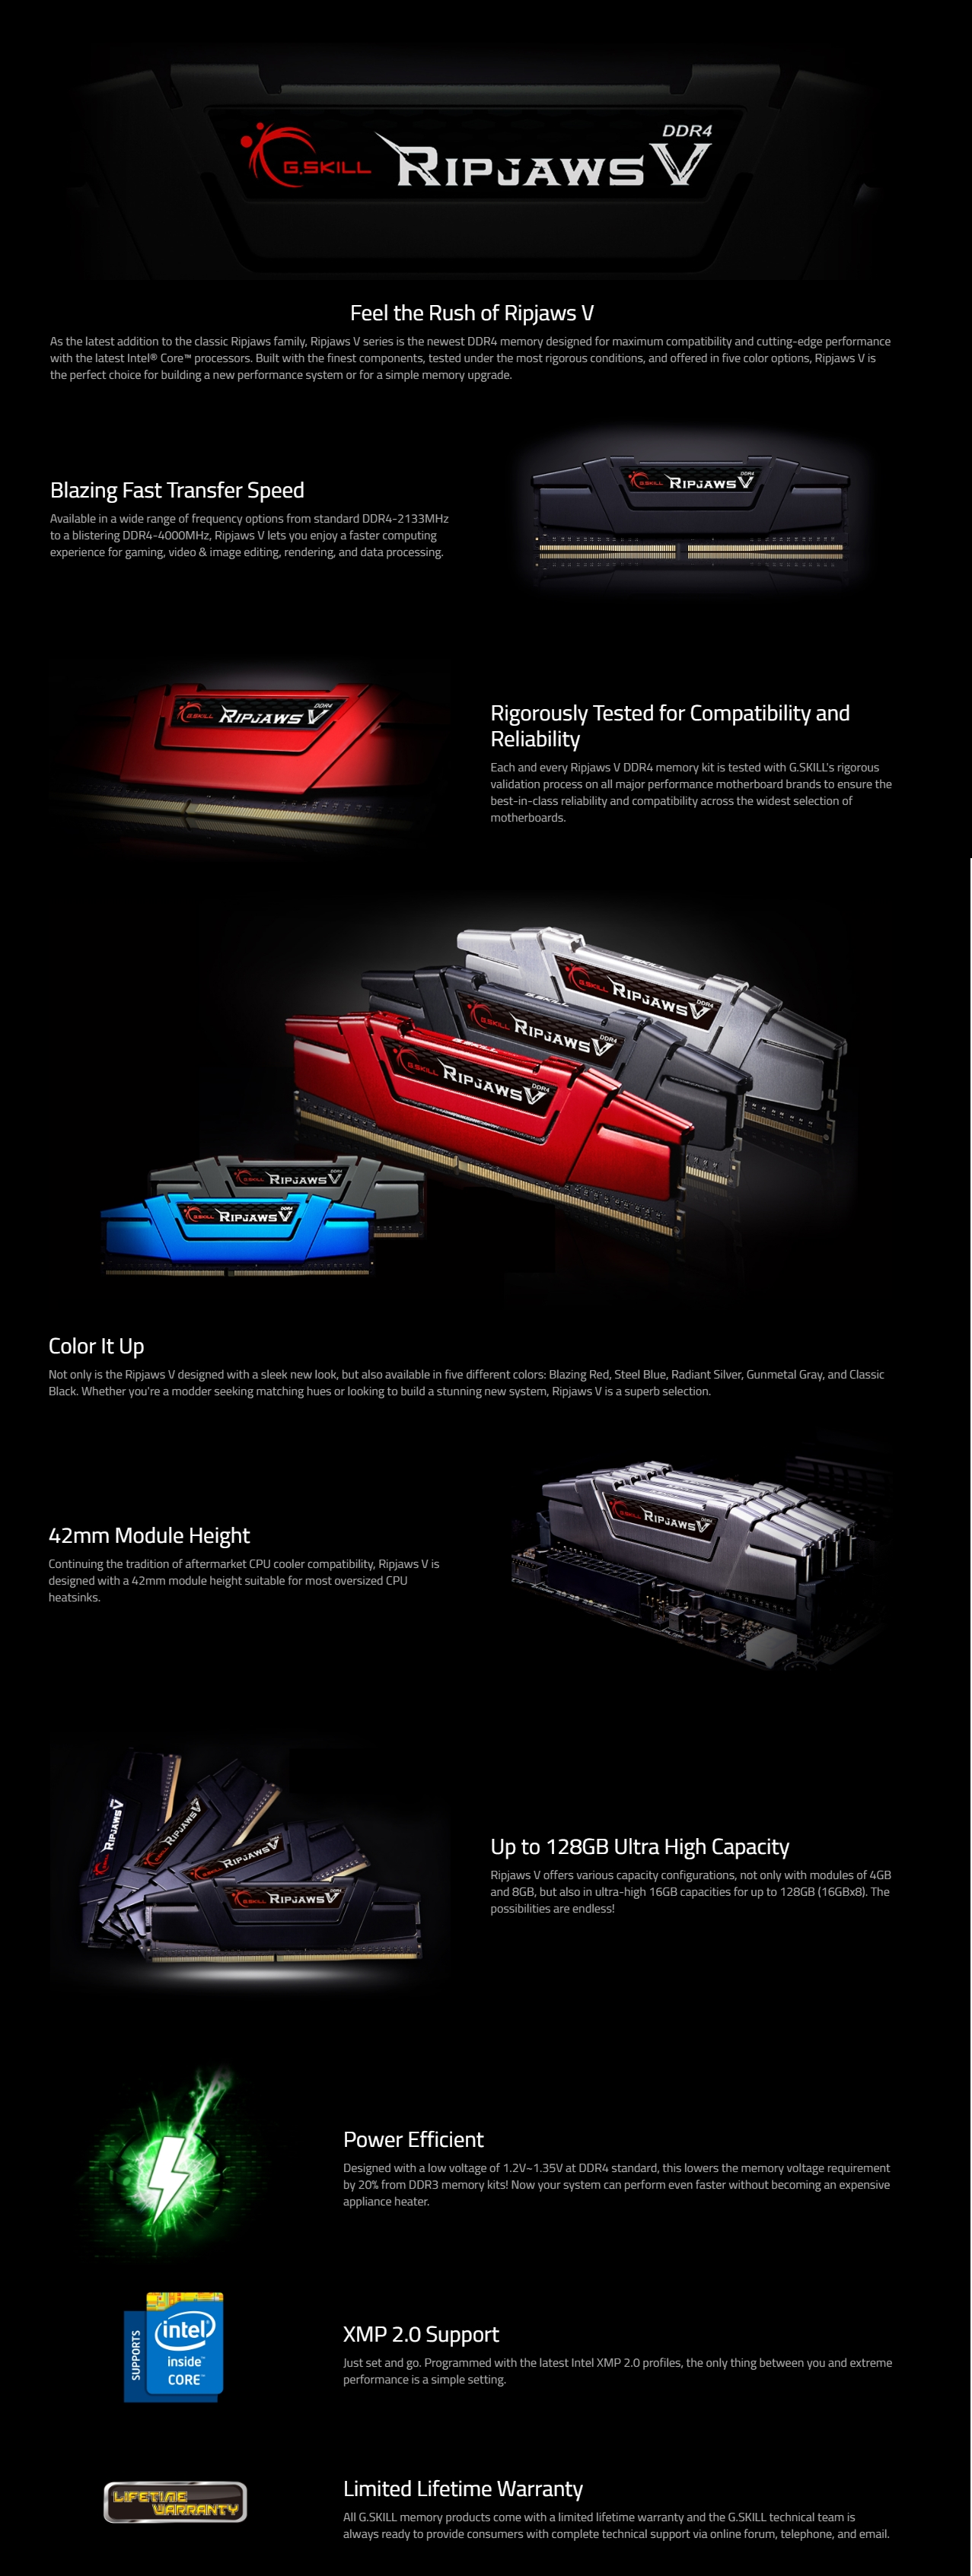 A large marketing image providing additional information about the product G.Skill 32GB Single DDR4 Ripjaws V C18 2666Mhz - Additional alt info not provided